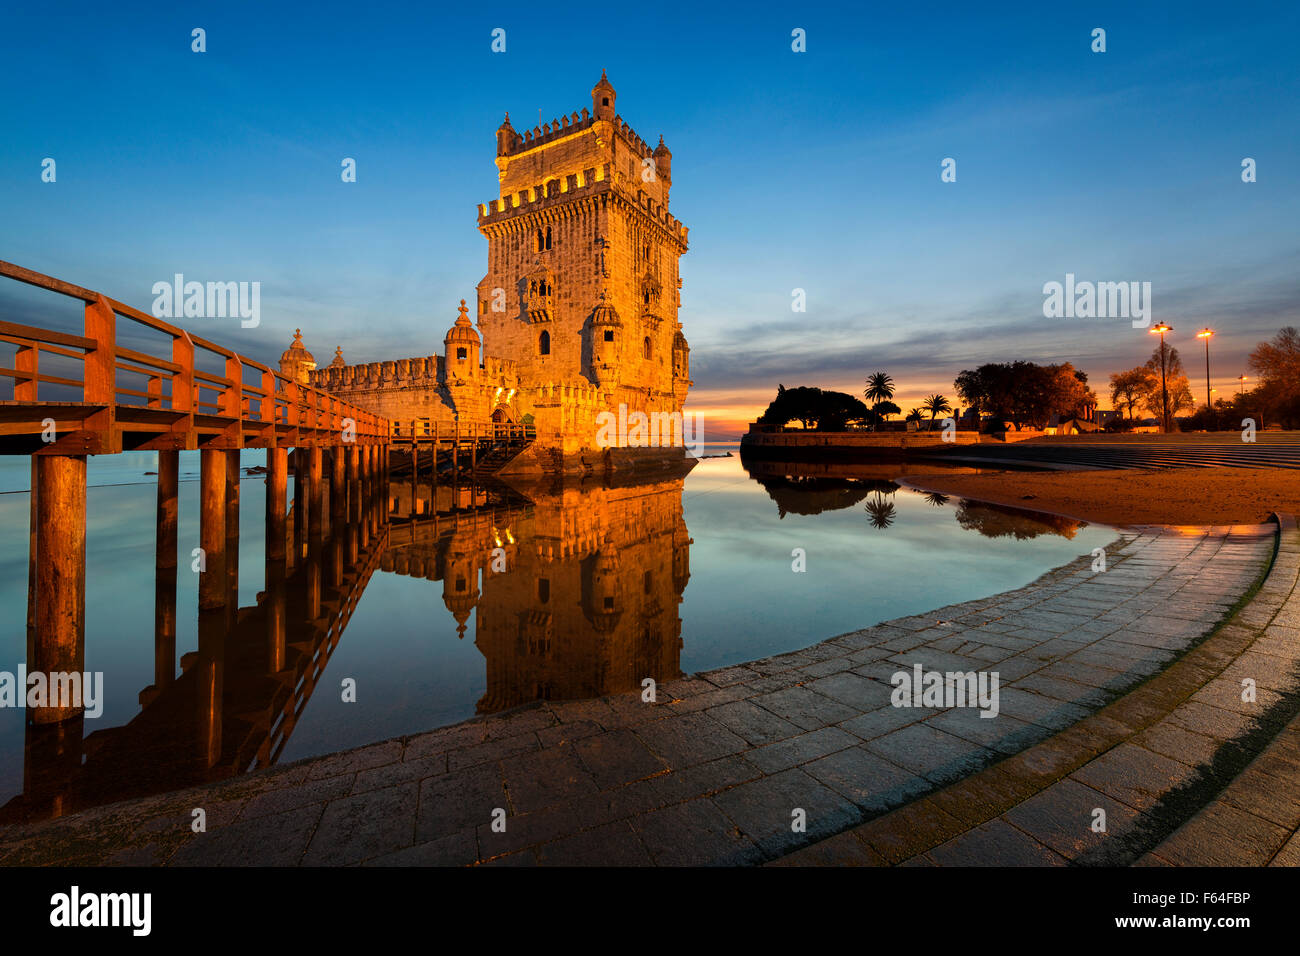 Belem Tower in Lisbon at sunset Stock Photo